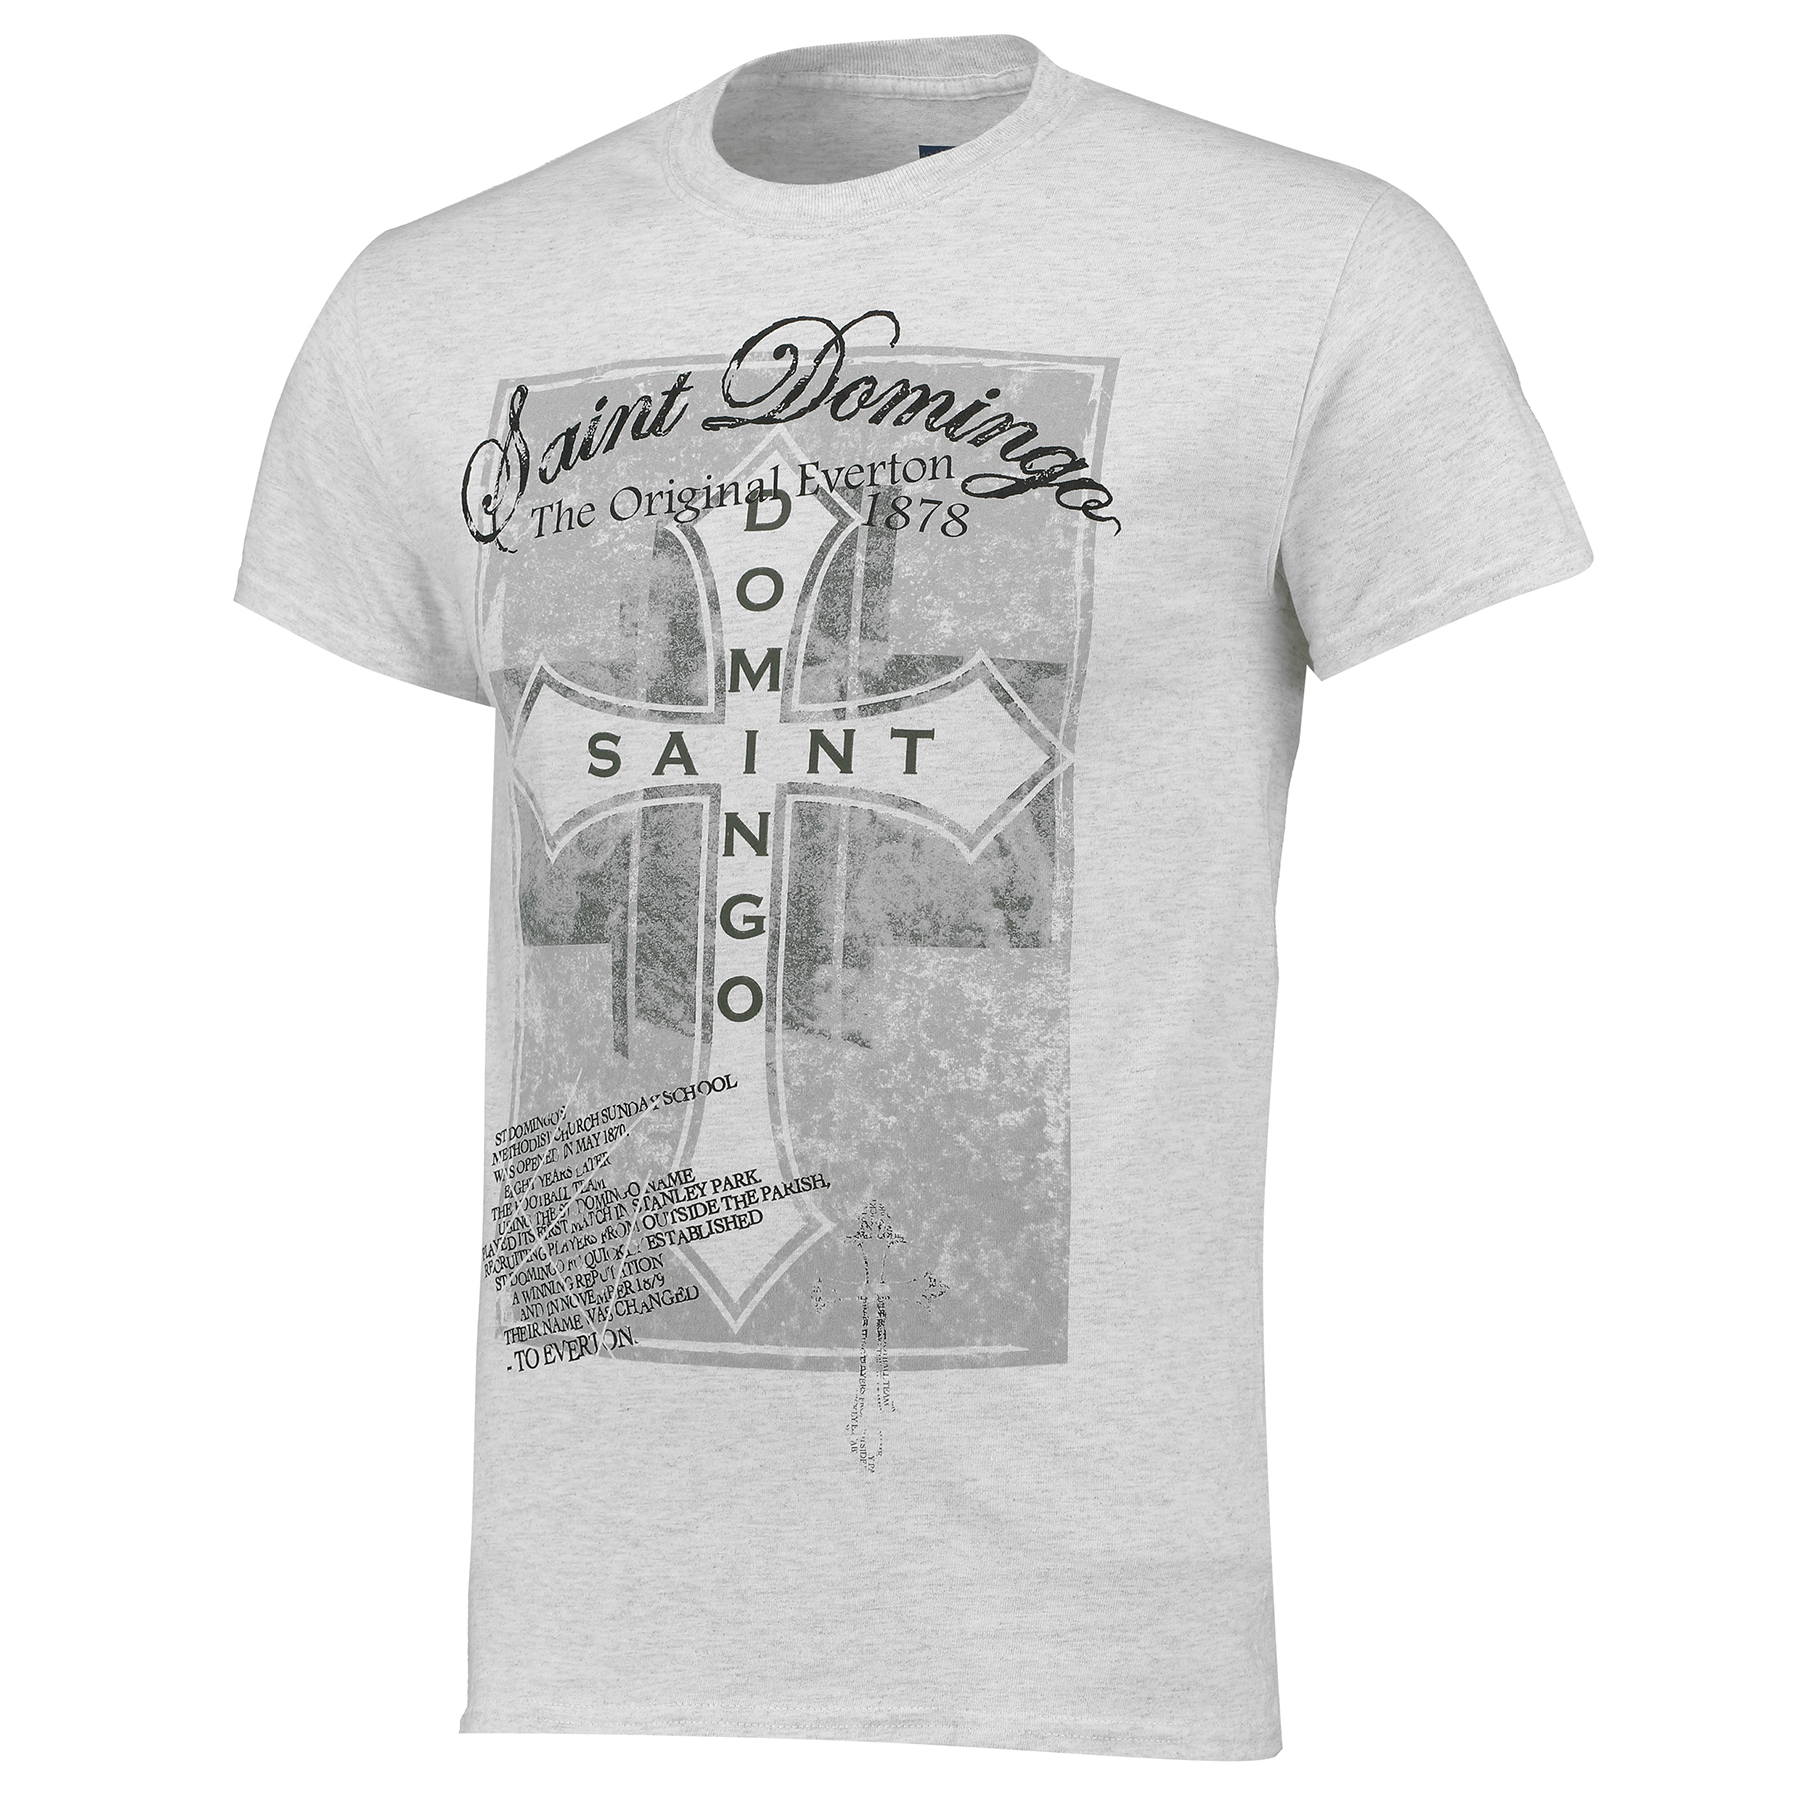 Everton 2for20 St Domingo T-Shirt - Light Grey